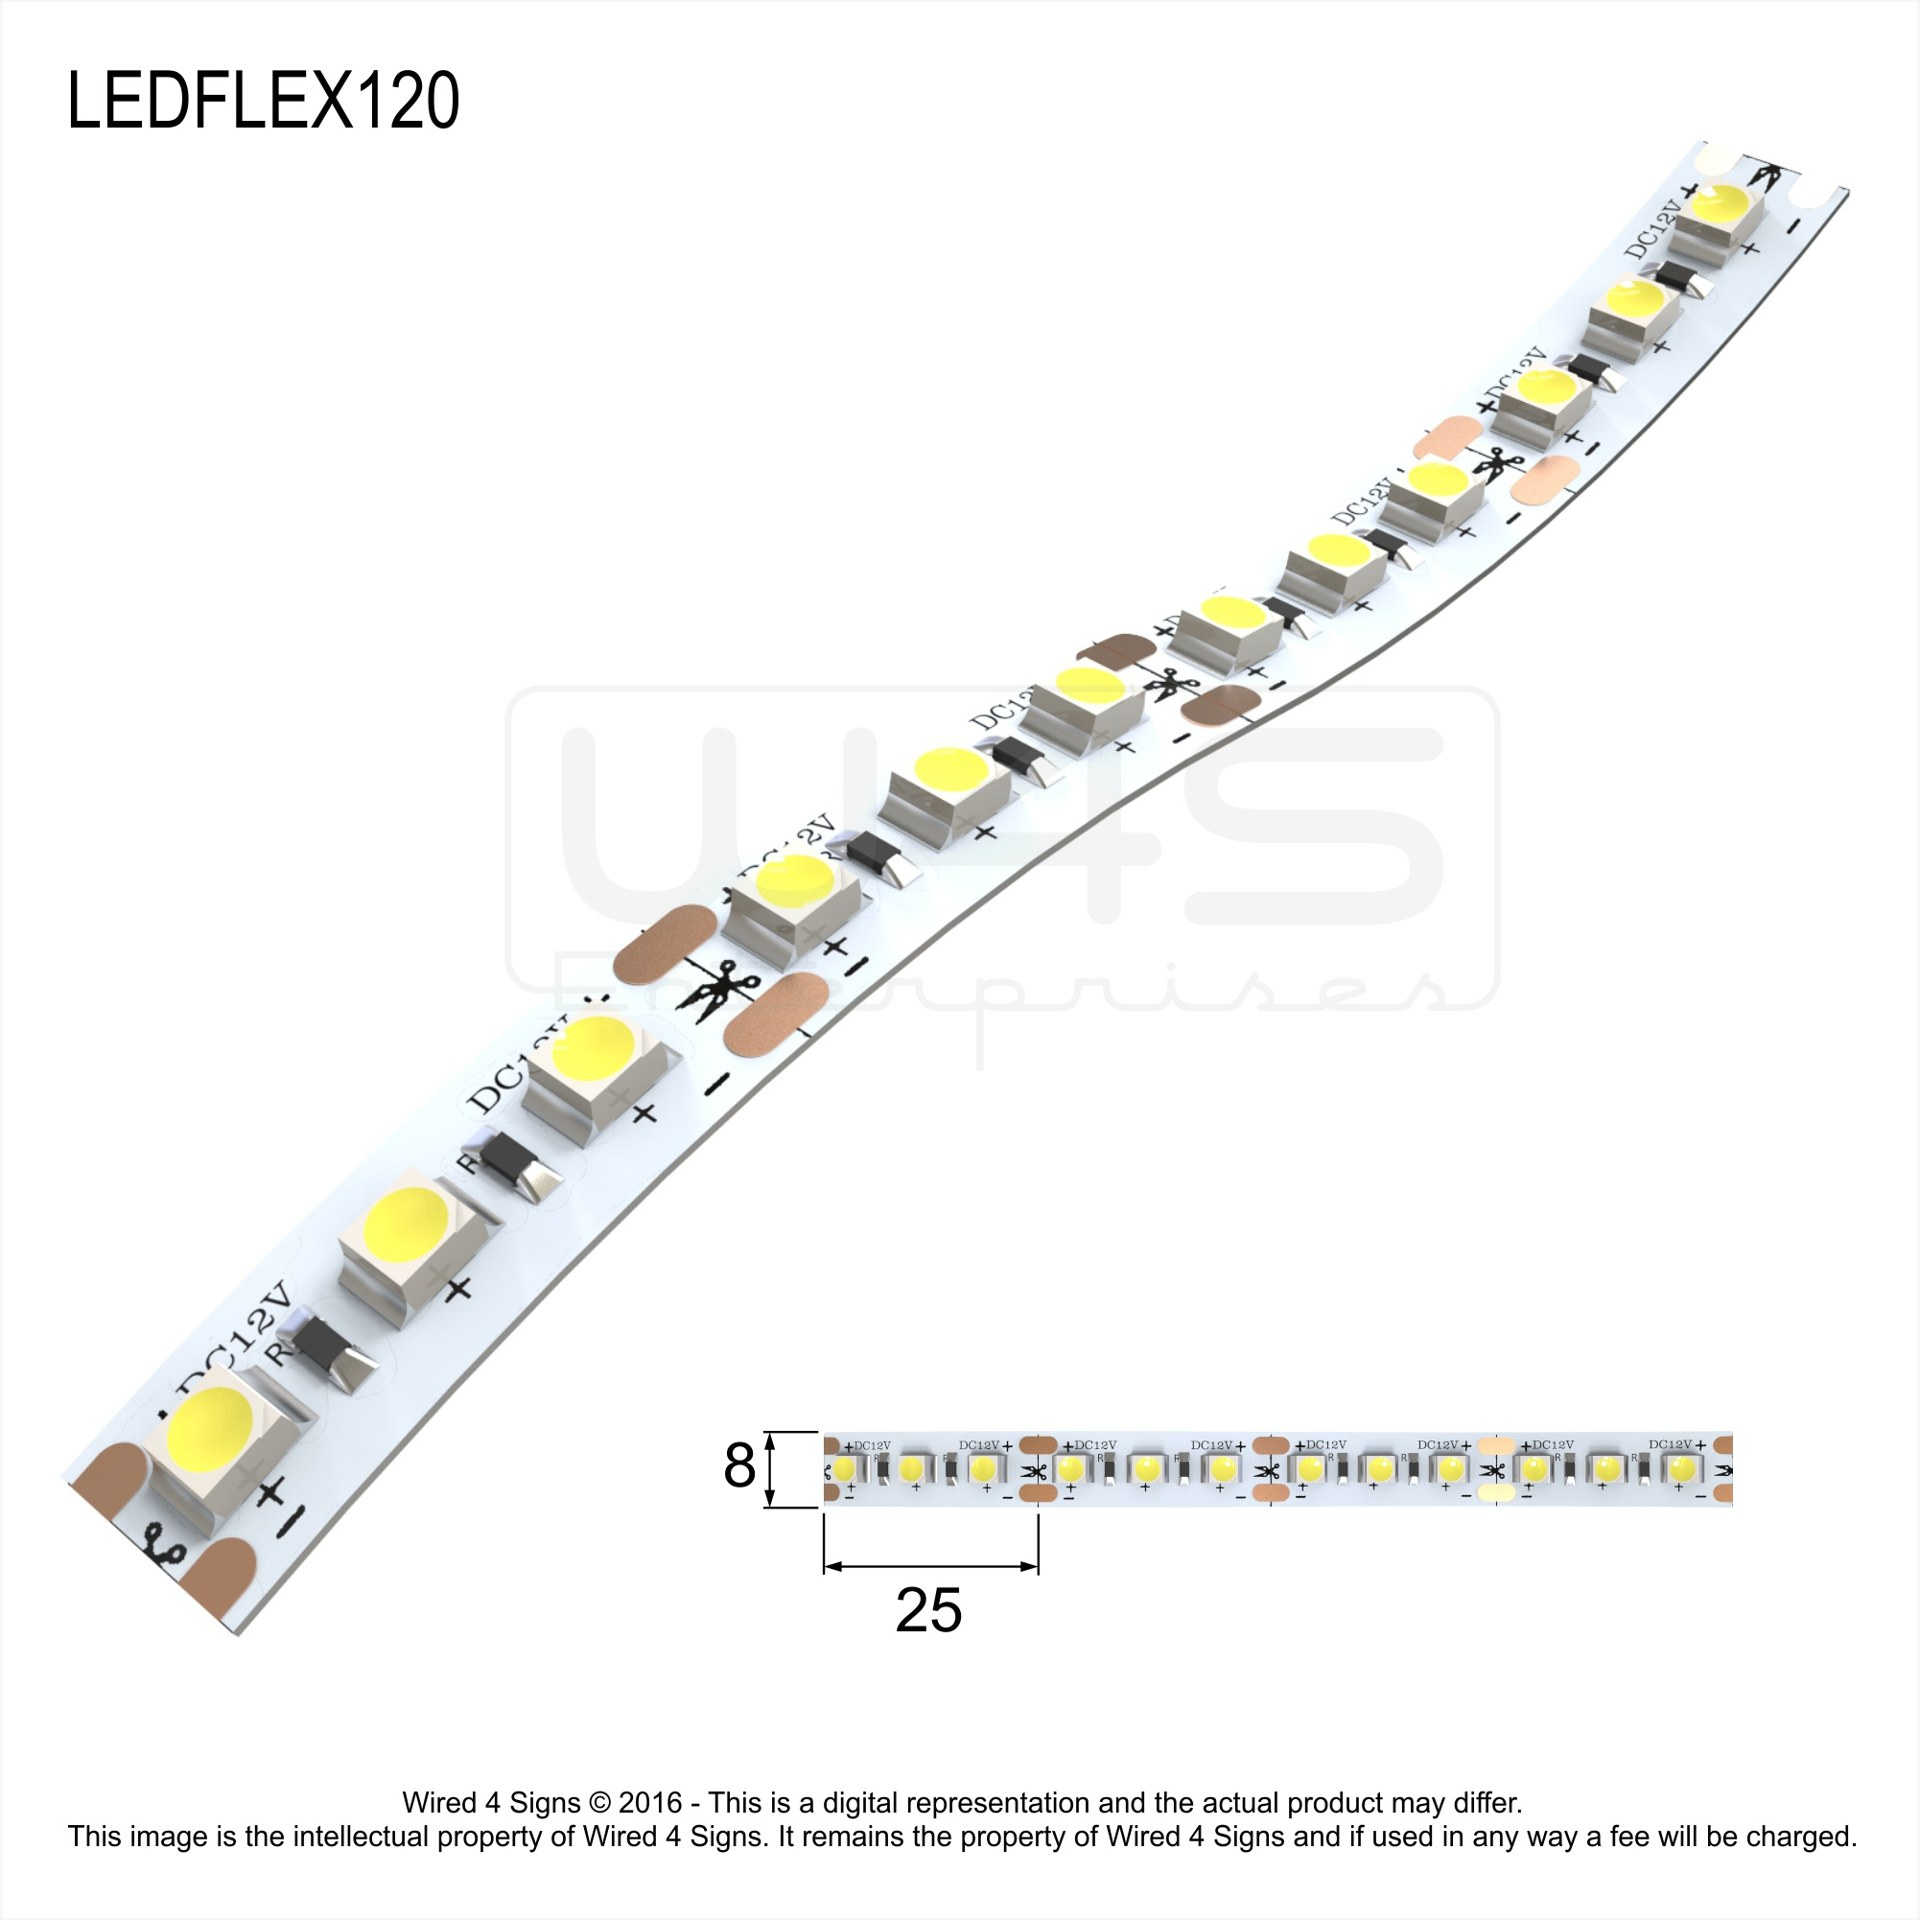 Led flex strip wired4signs led flexible strip lighting aloadofball Image collections